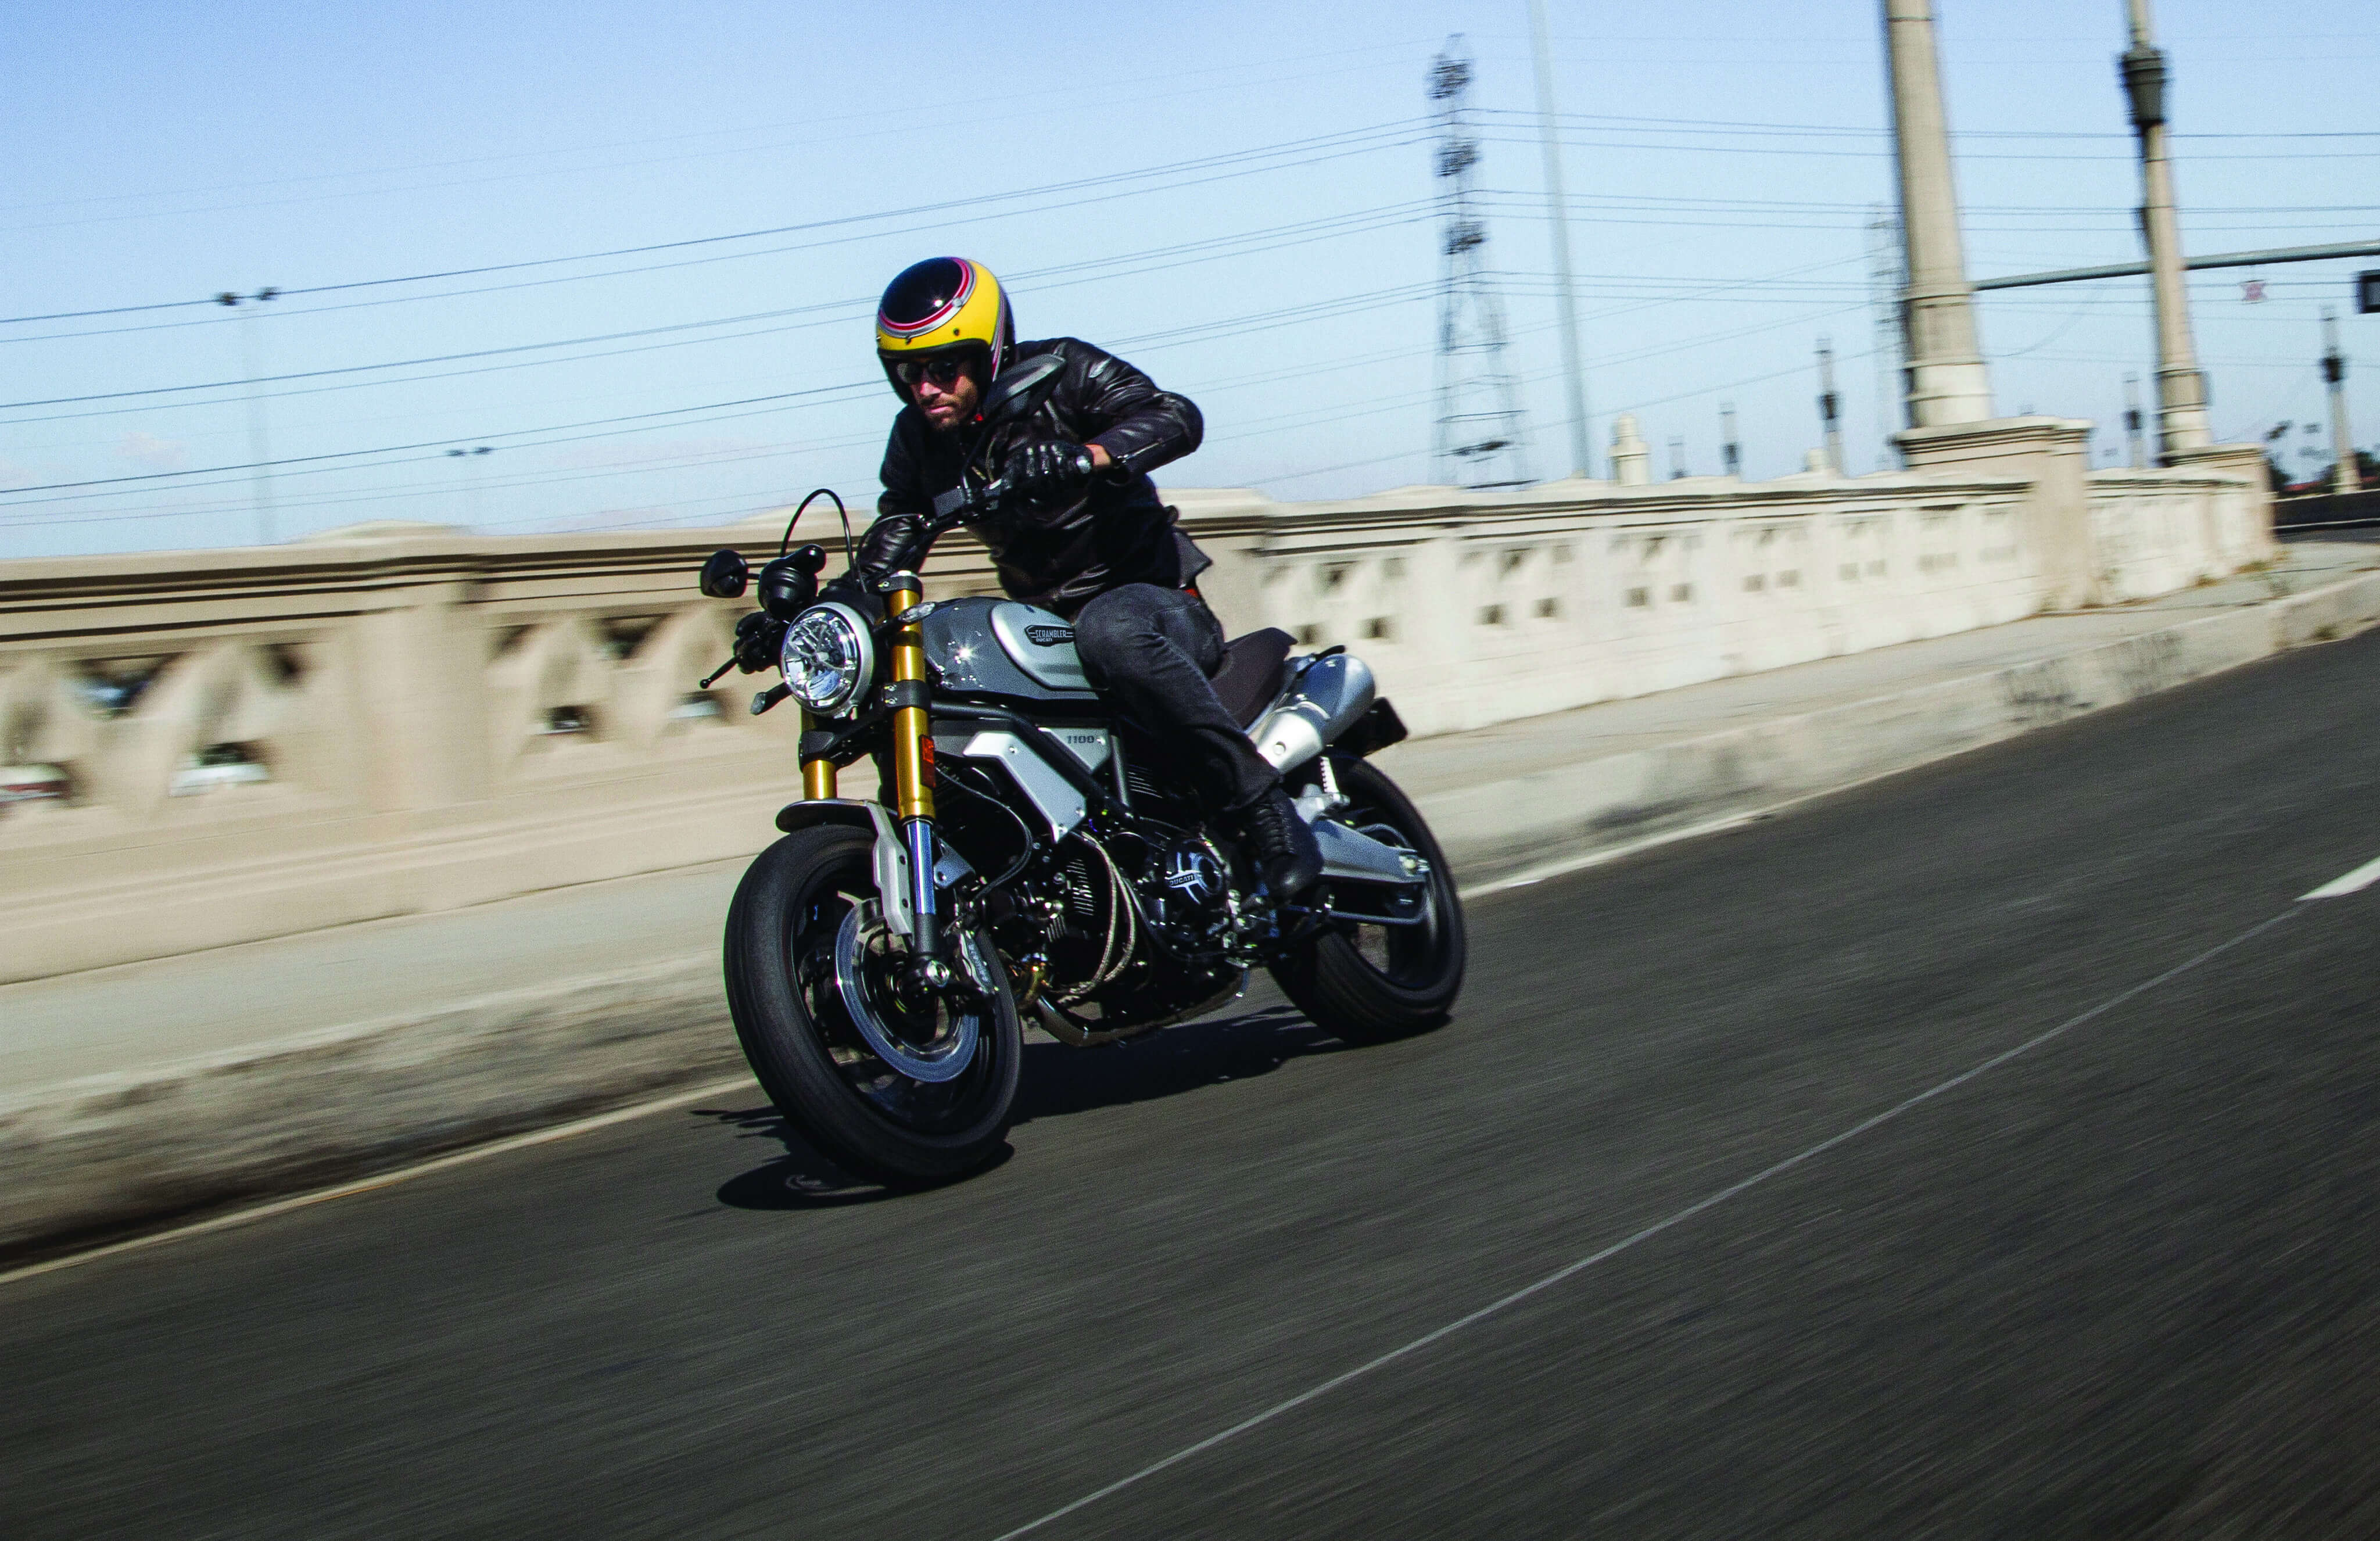 ducati scrambler rolling shot photos wallpaper 65289